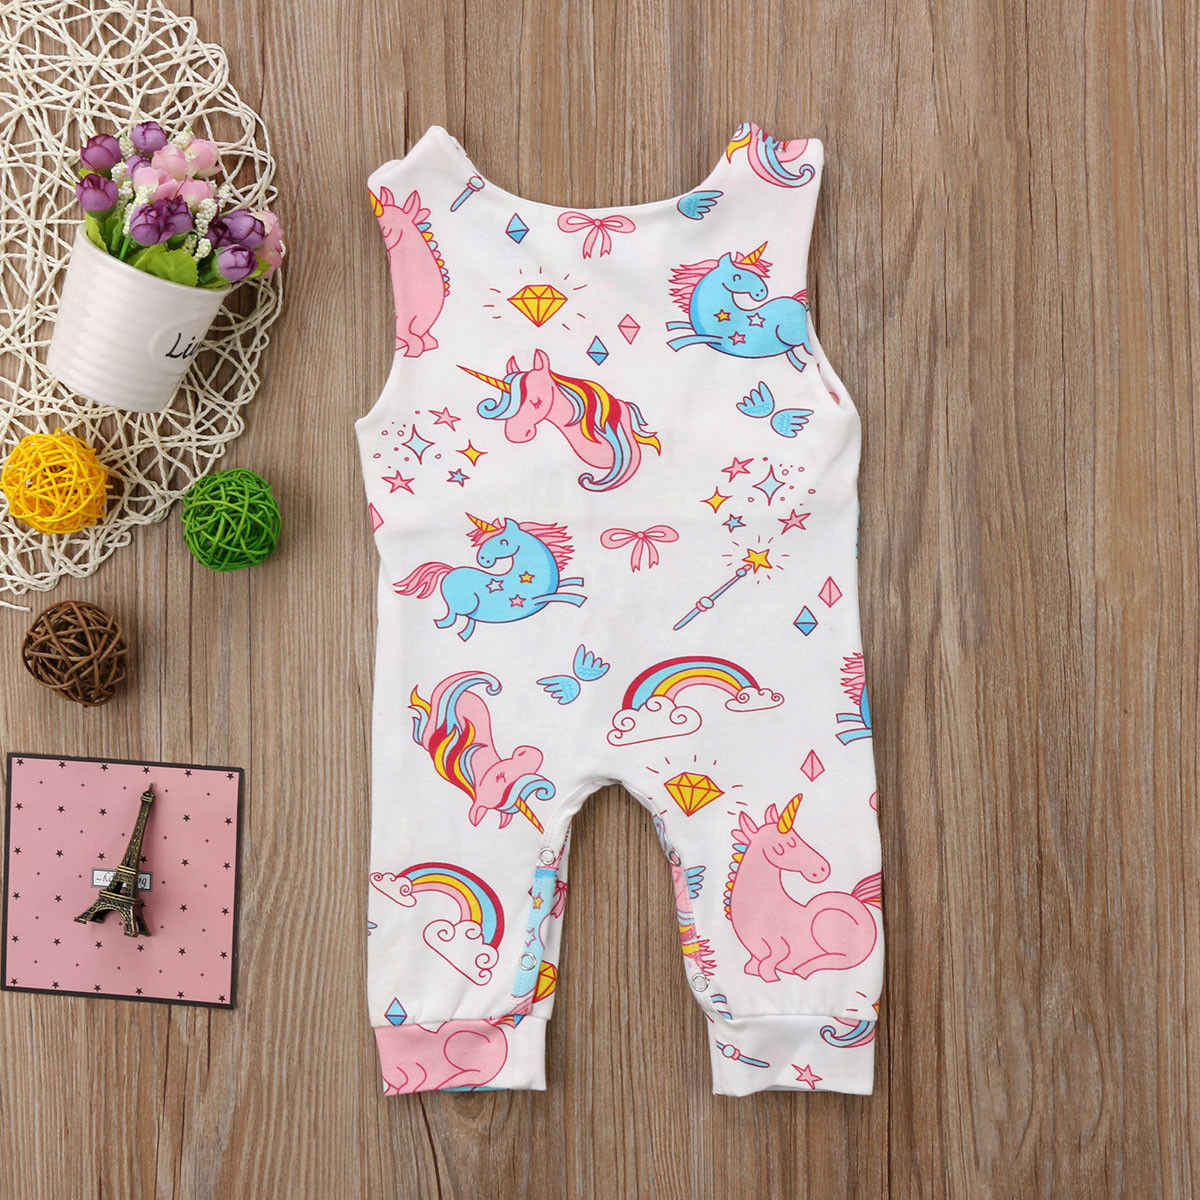 d8149eb06 Detail Feedback Questions about Pudcoco Newborn Baby Clothing Cute ...